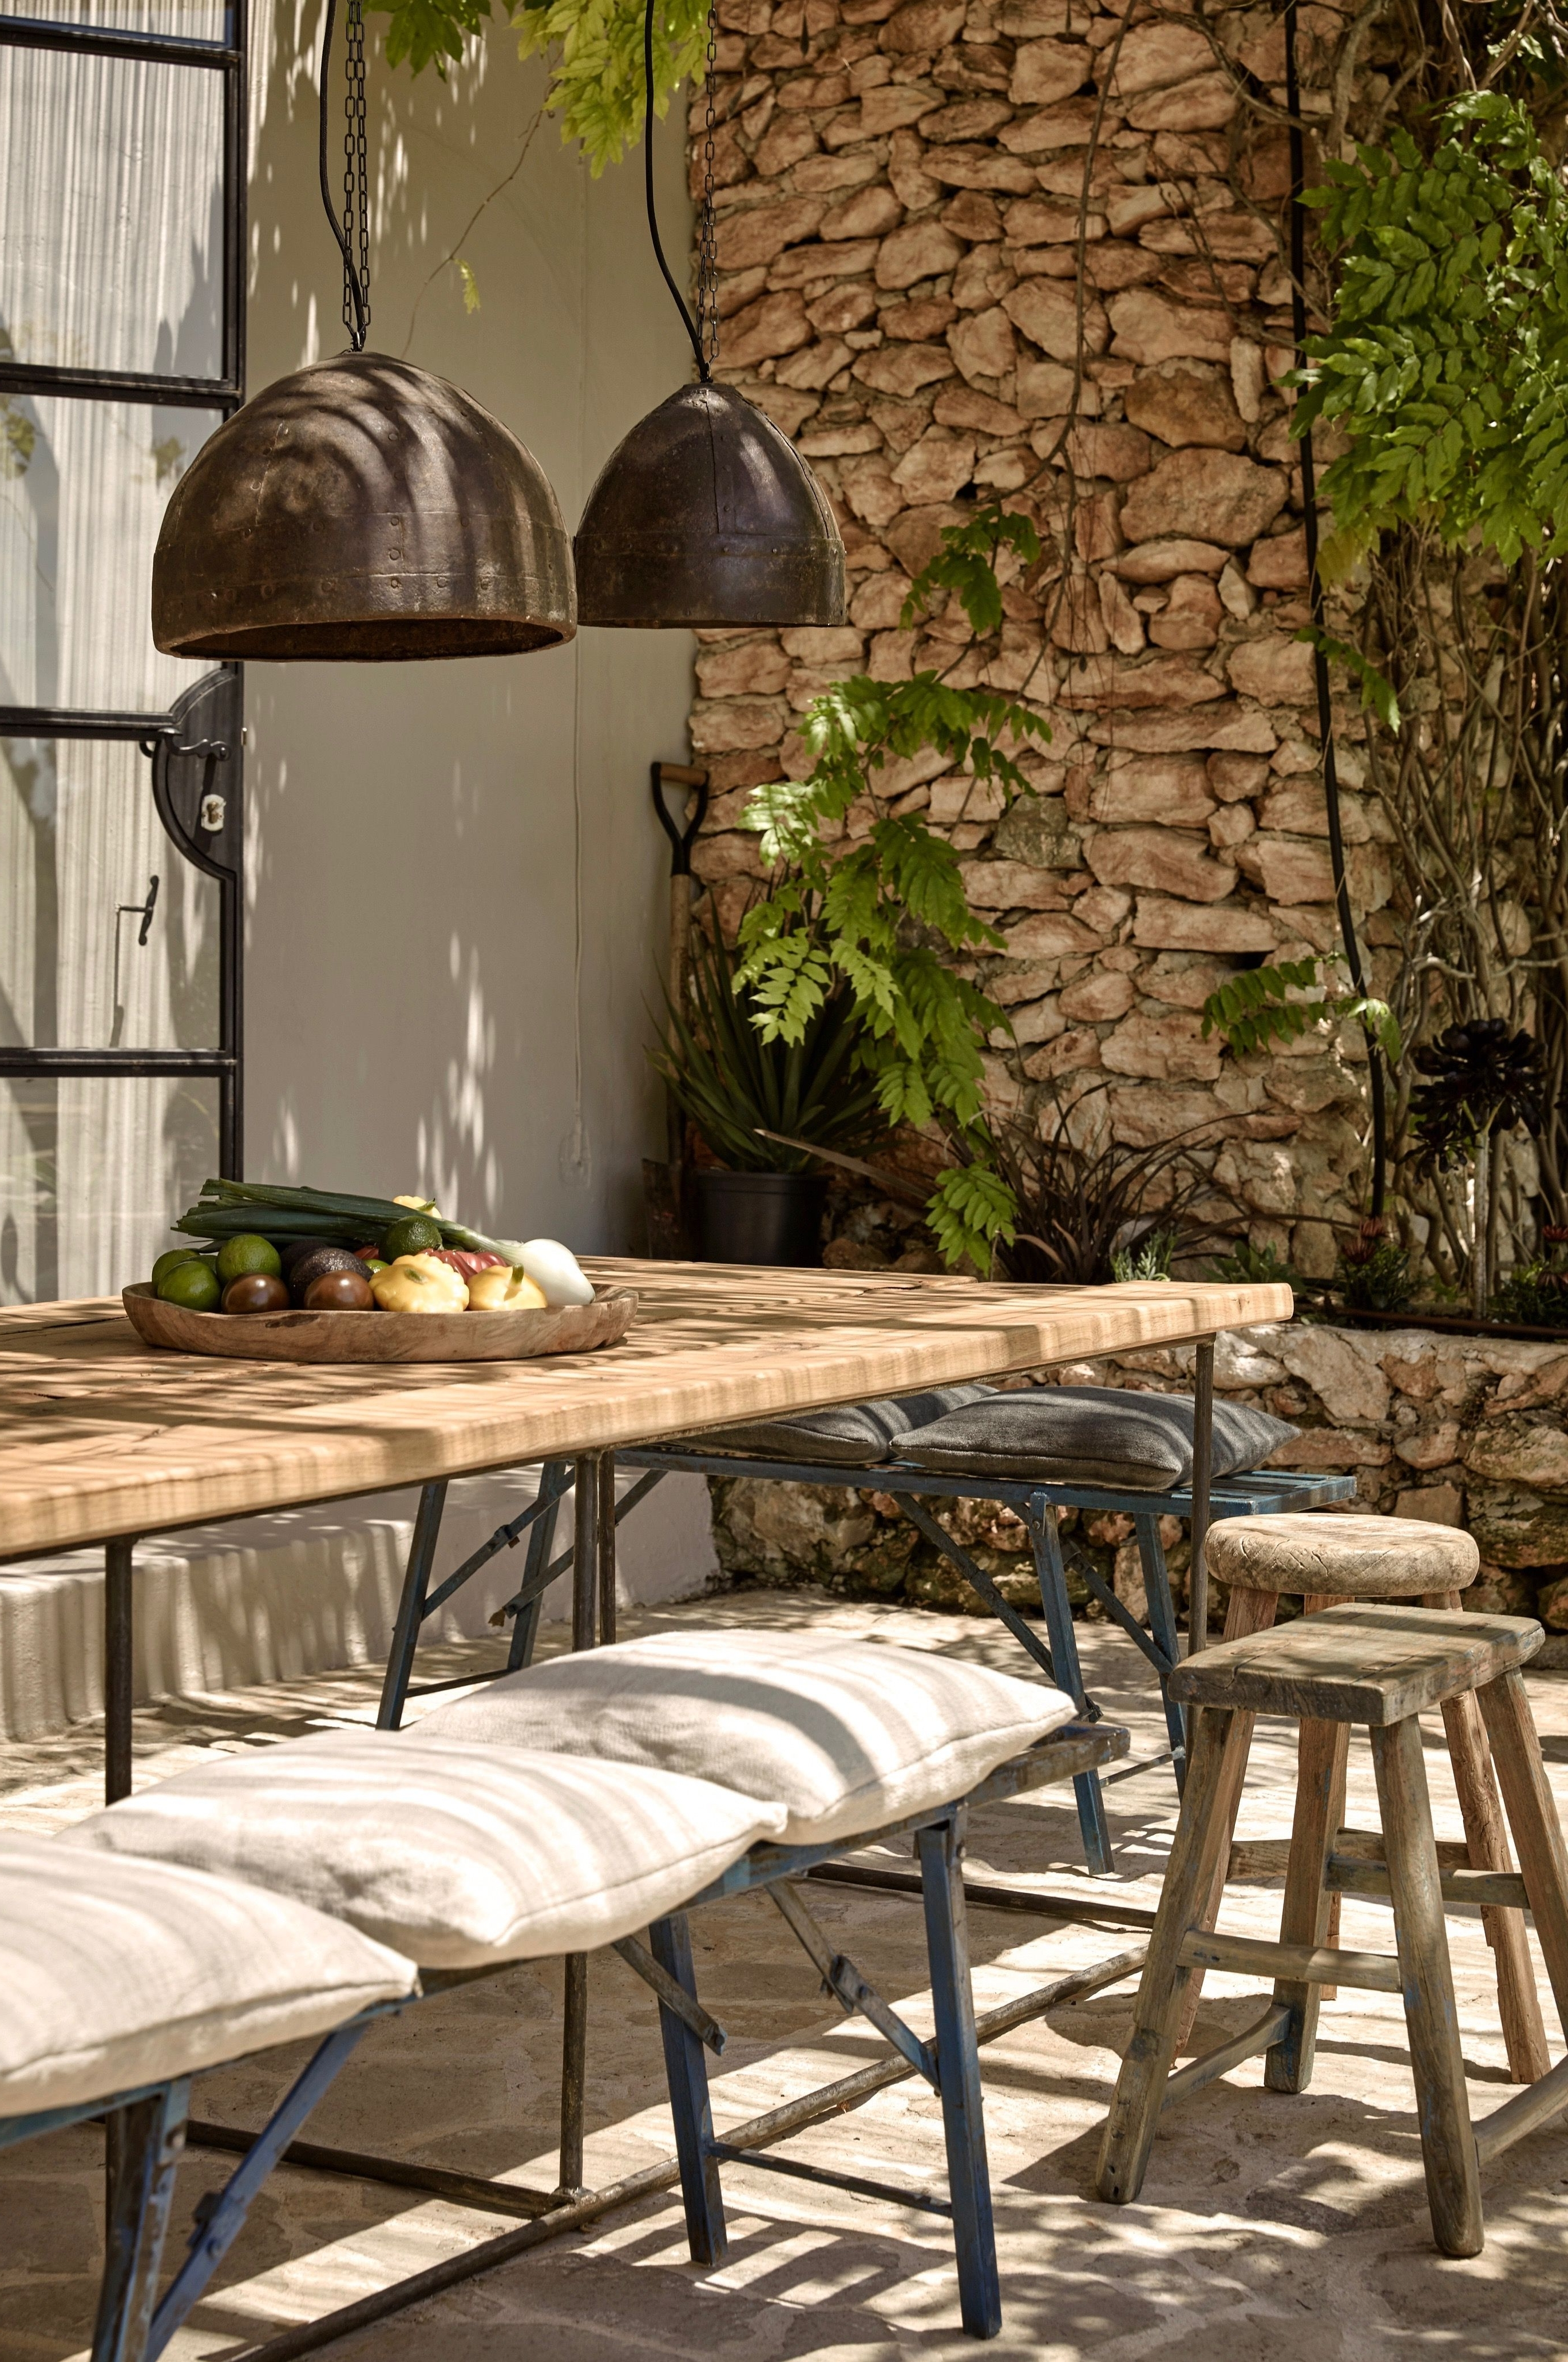 Well Known Outdoor Dining Lanterns With Regard To Hotel La Granja Ibiza Outdoor Dining Lanterns Stone Wall Gardenista (View 12 of 20)